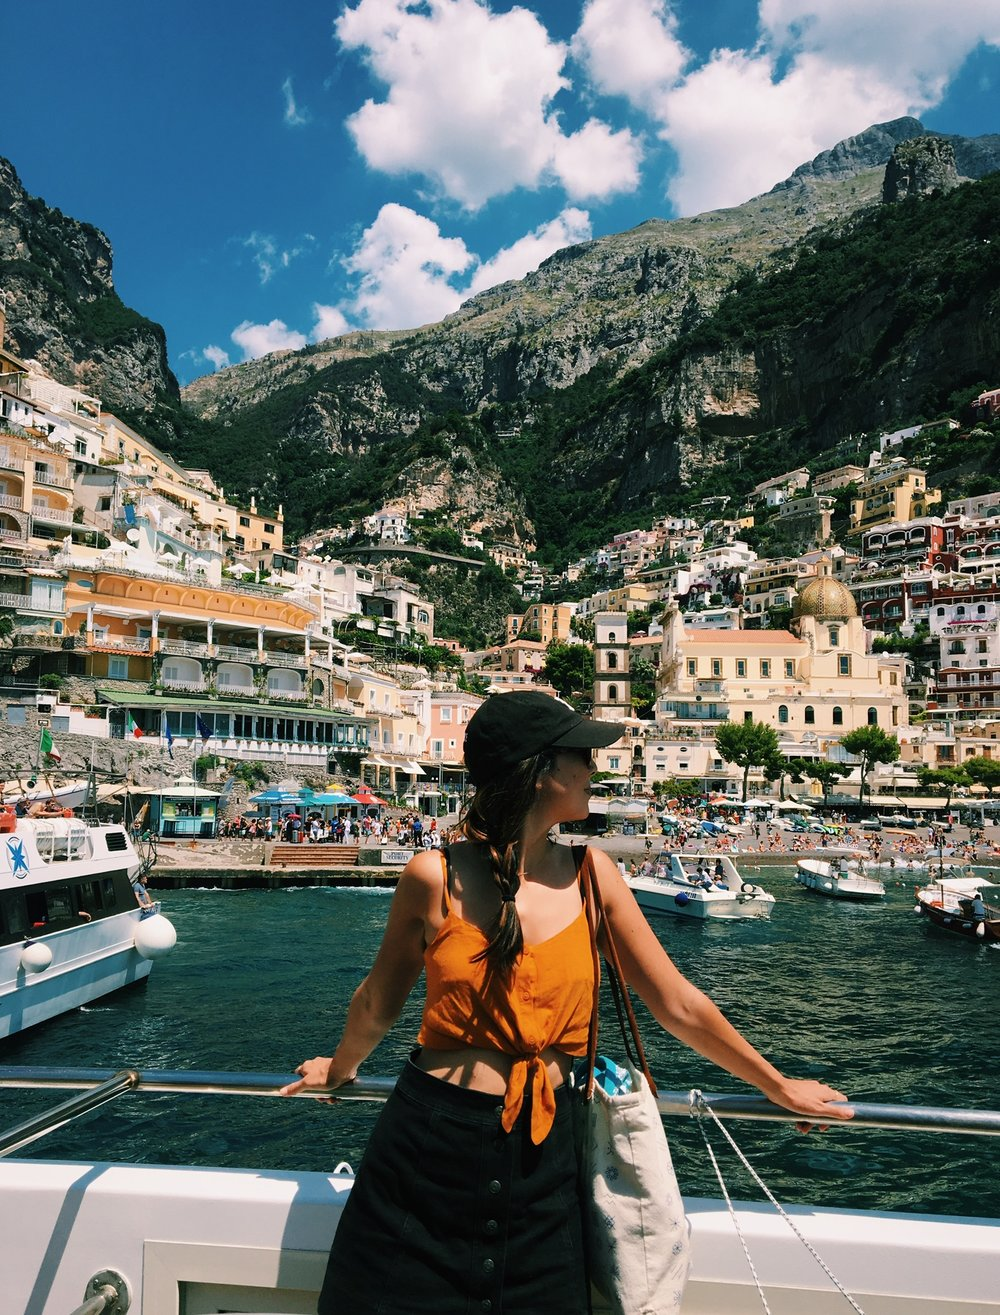 Ferry ride to Positano. Wearing a crop top from Topshop.